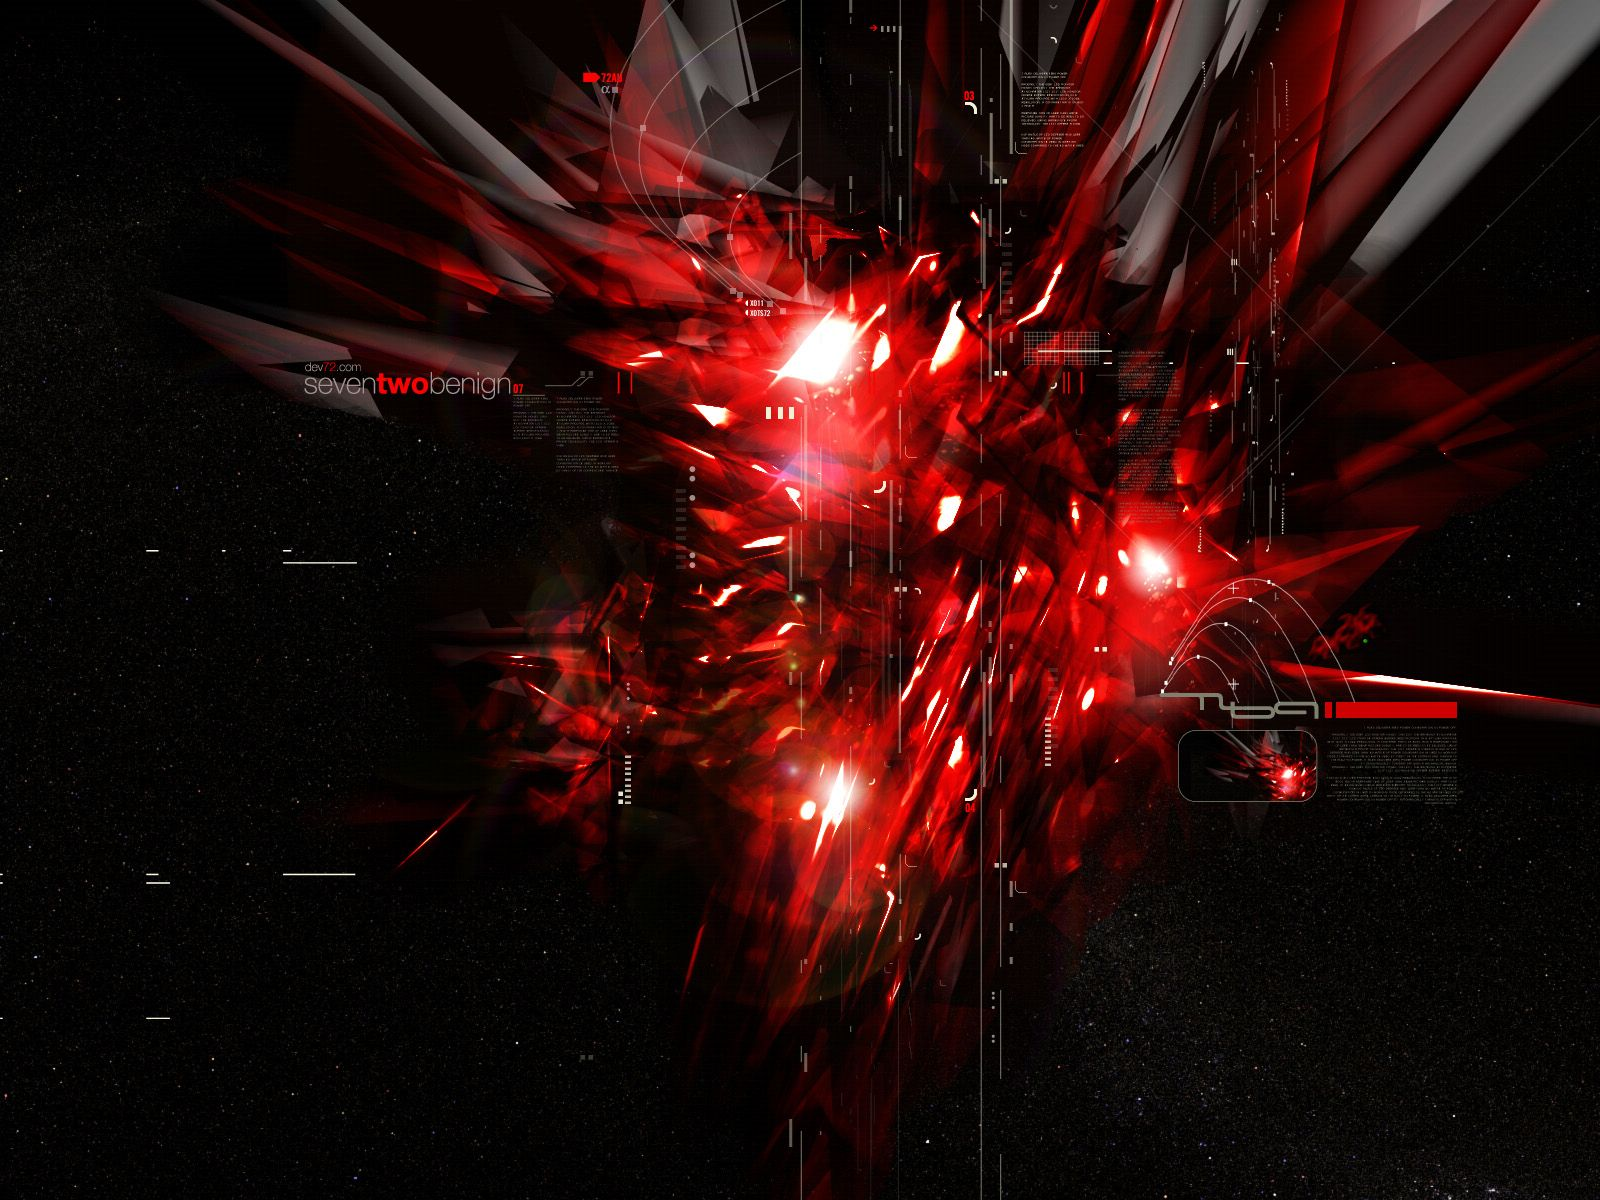 Google Image Result For Http Wallpoper Com Images 00 37 49 31 Abstract Black 003 Red And Black Wallpaper Black Abstract Background Black Background Wallpaper